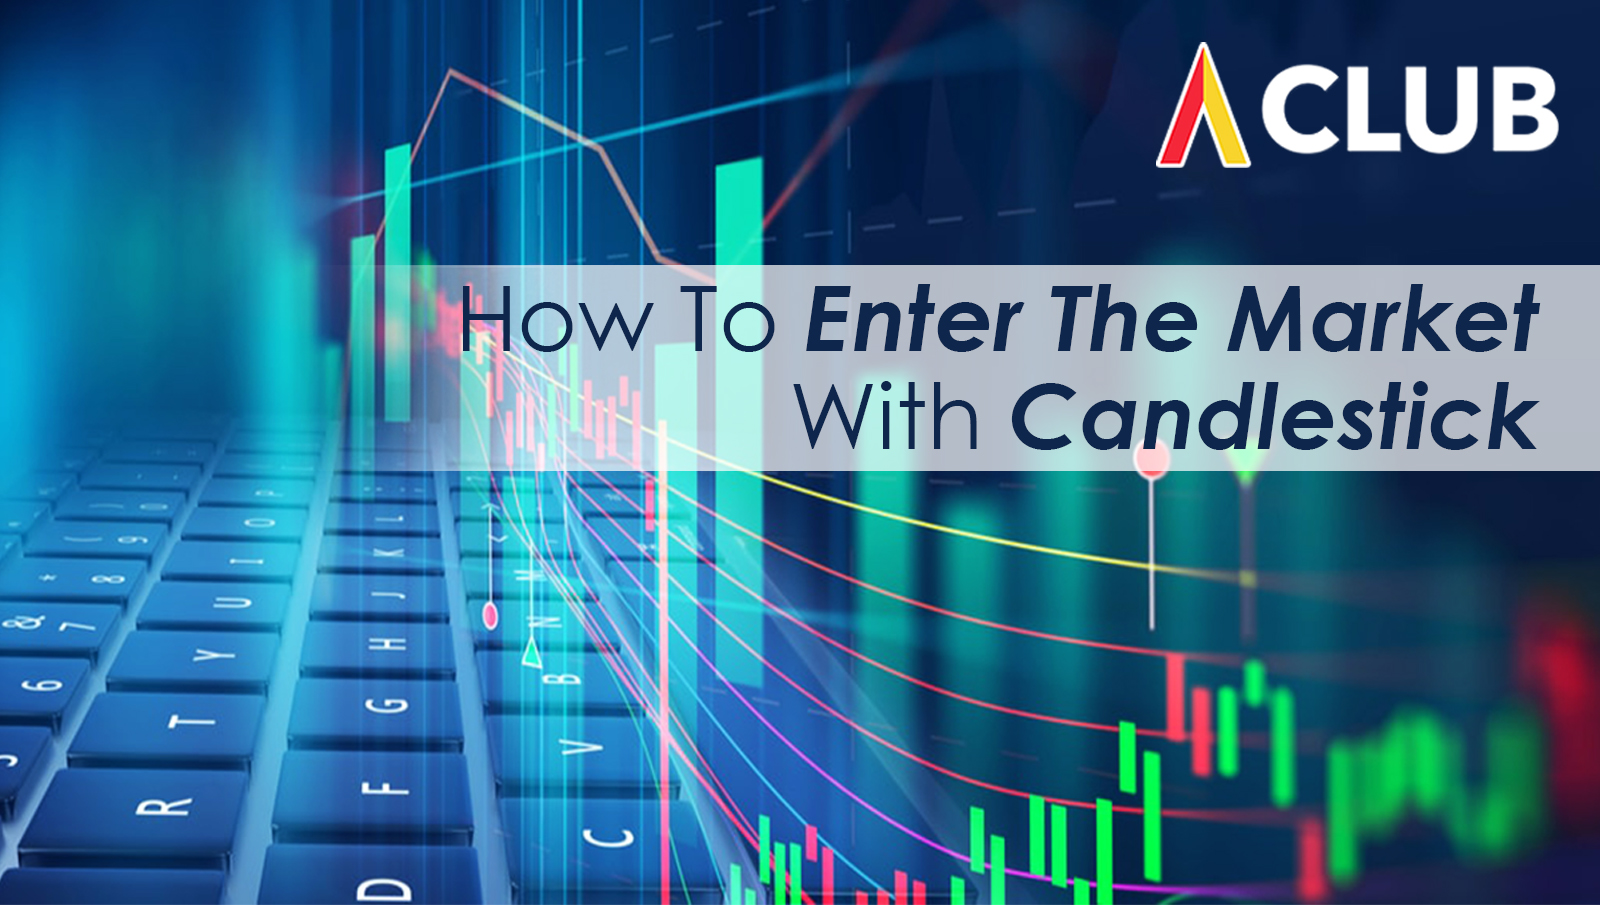 How To Enter The Market With Candlestick - Anthonius Edyson